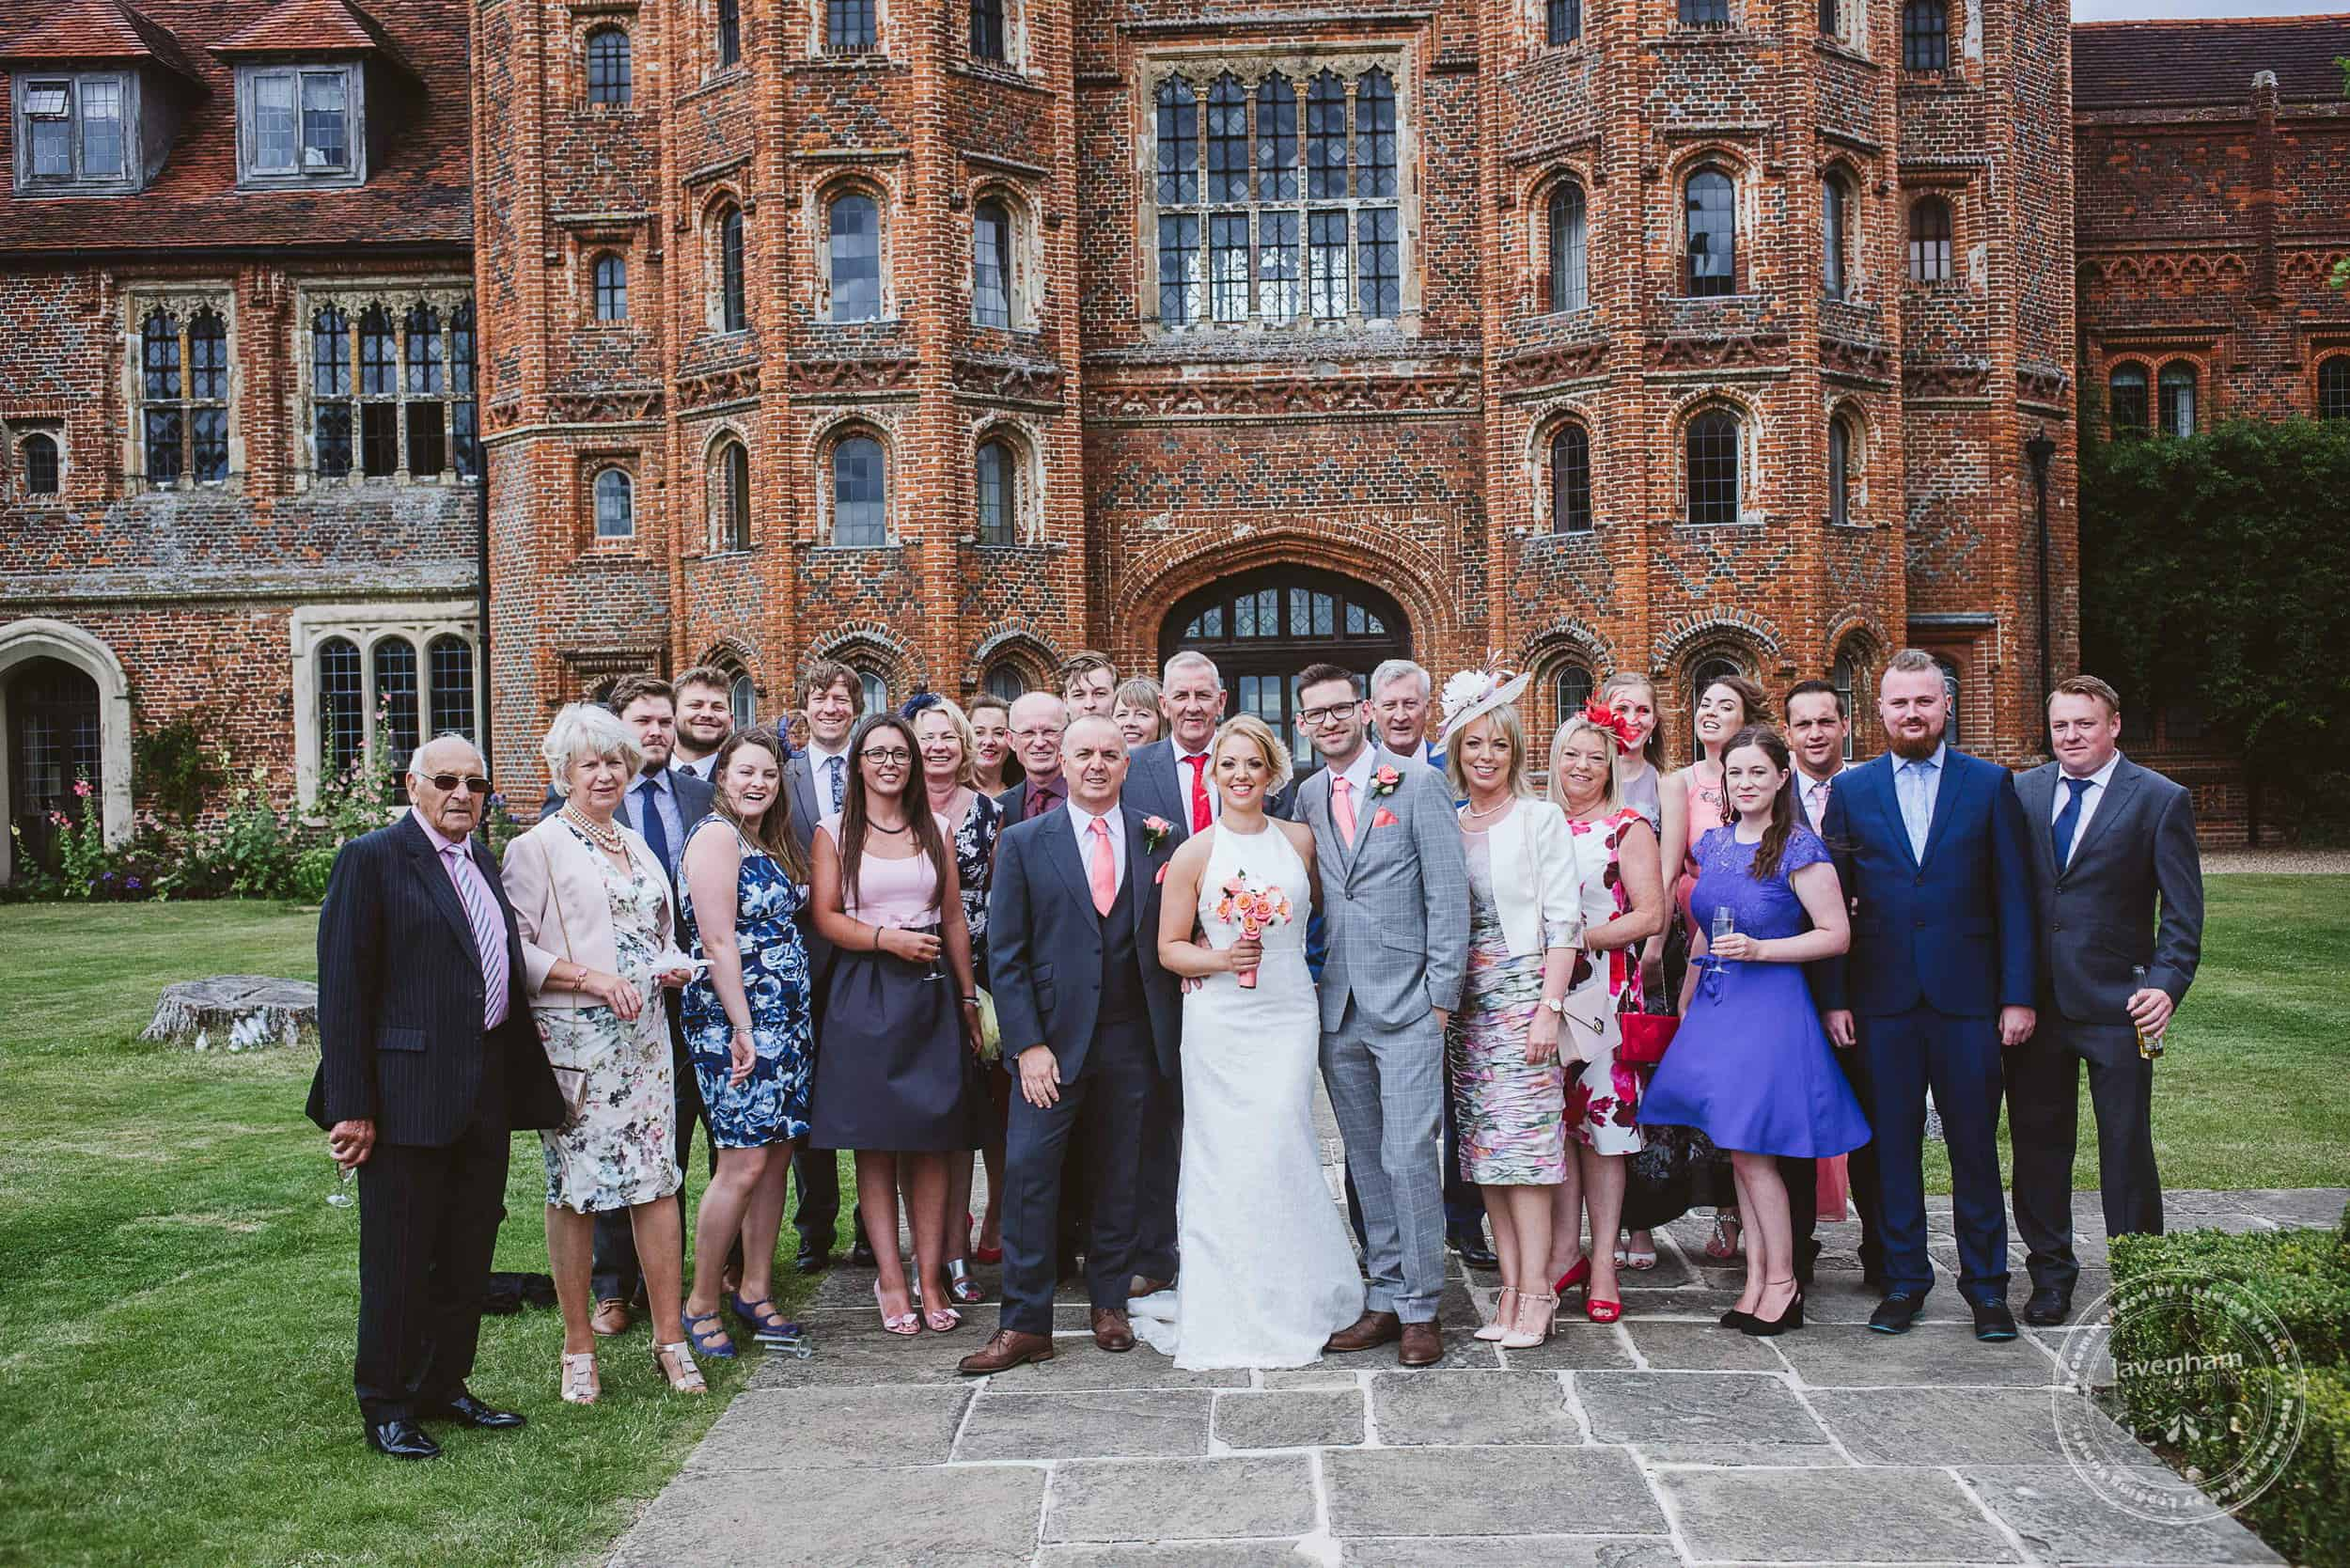 140717 Layer Marney Wedding Photography by Lavenham Photographic 075